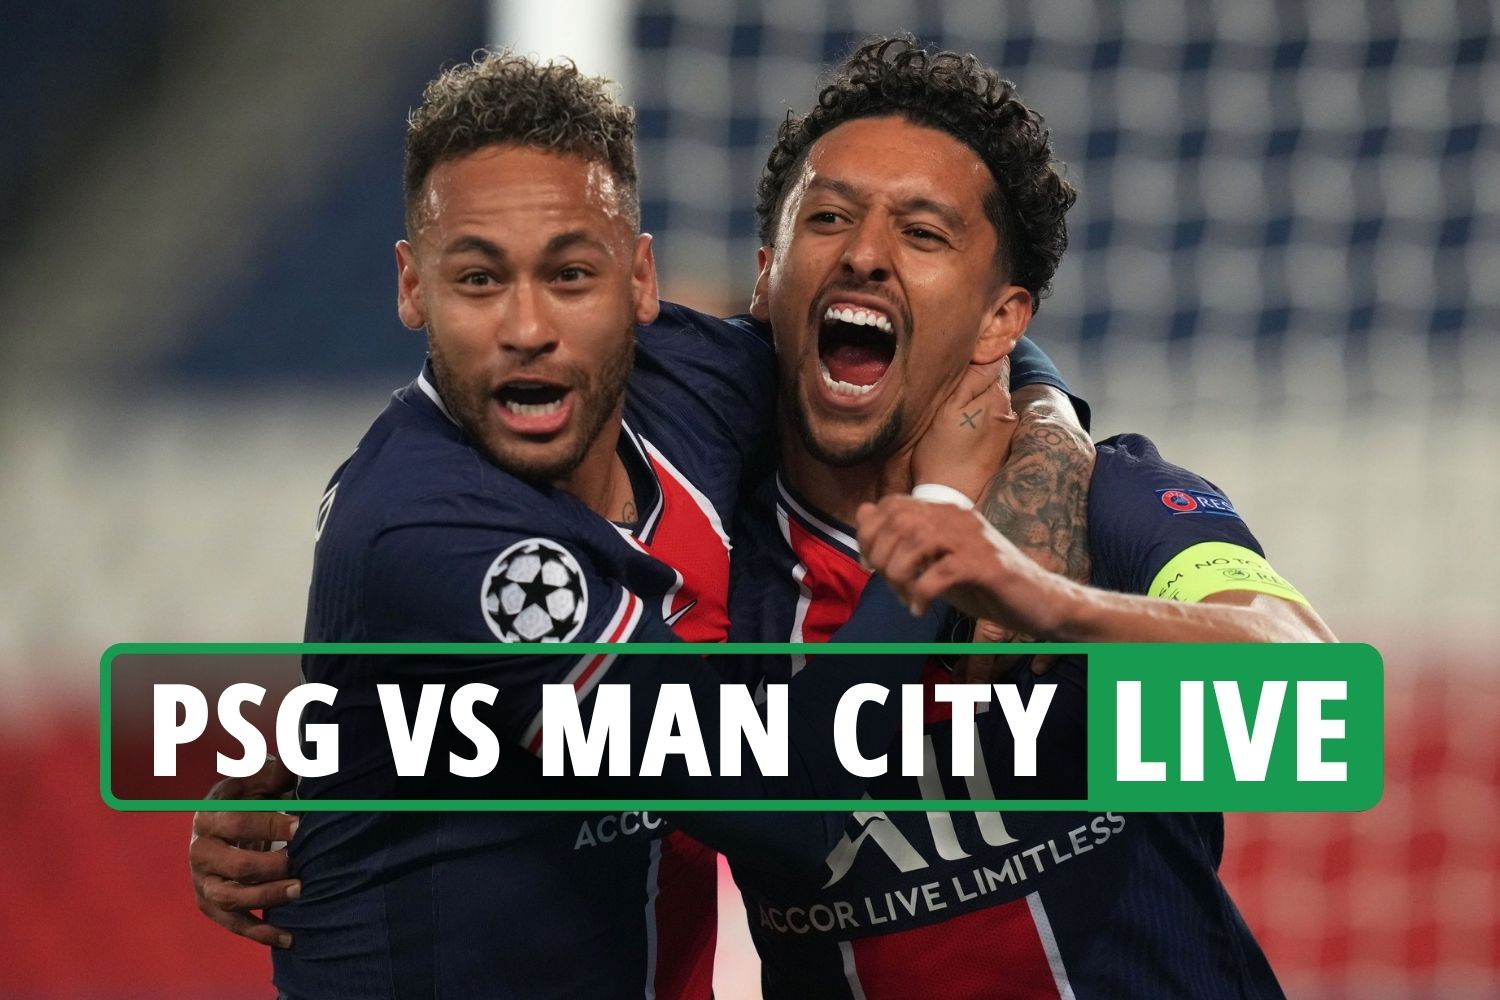 PSG vs Man City LIVE: Stream FREE, score, TV channel as French side LEAD in  Paris